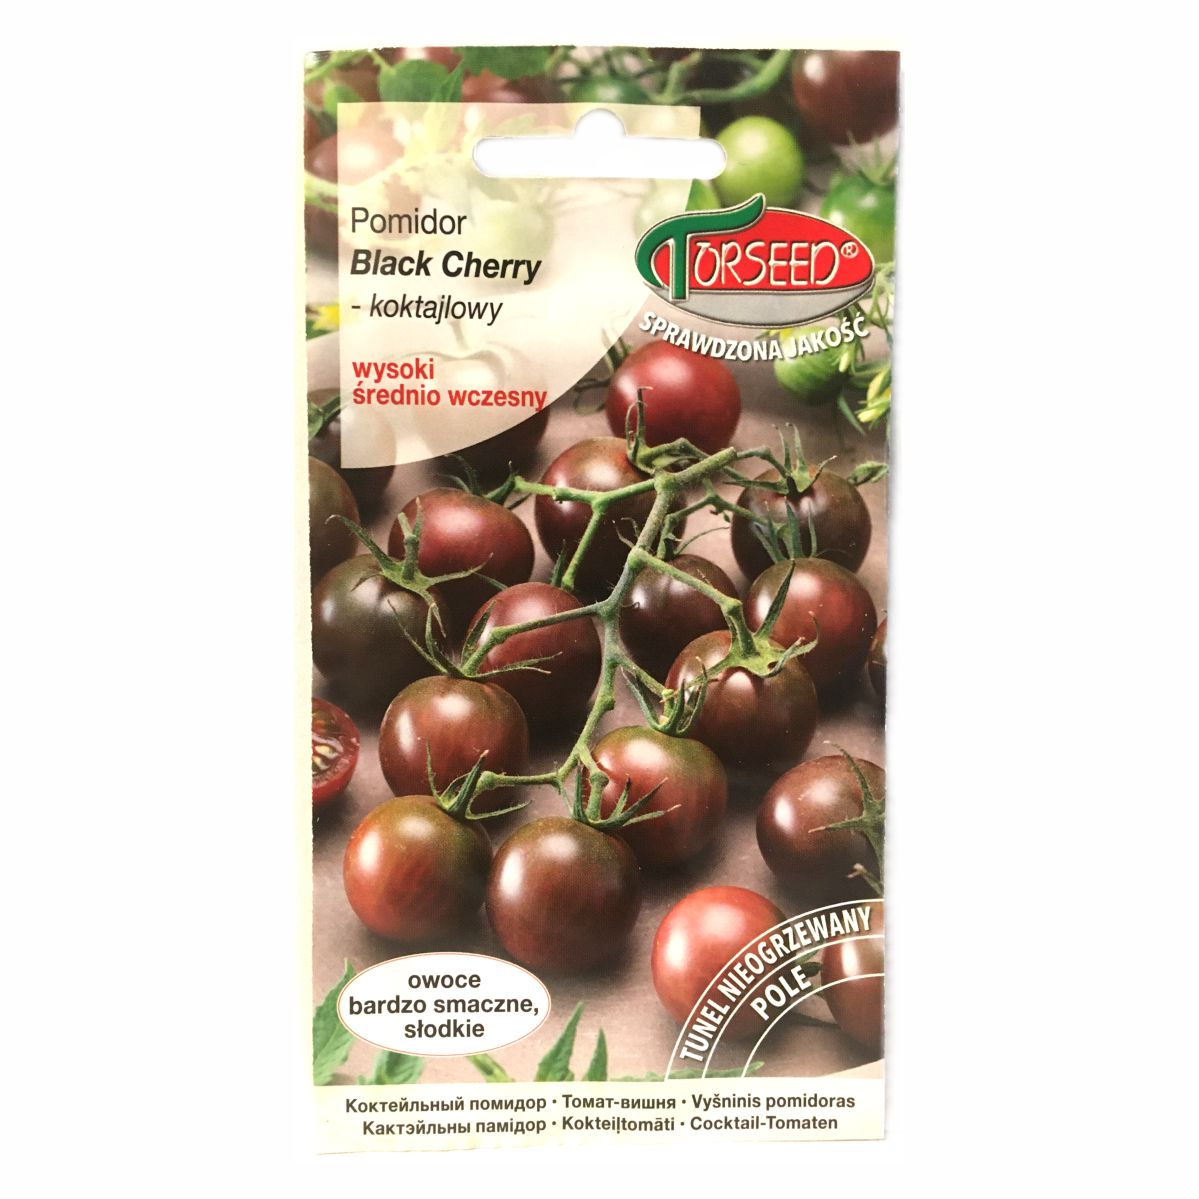 Pomidor Black Cherry nasiona Torseed